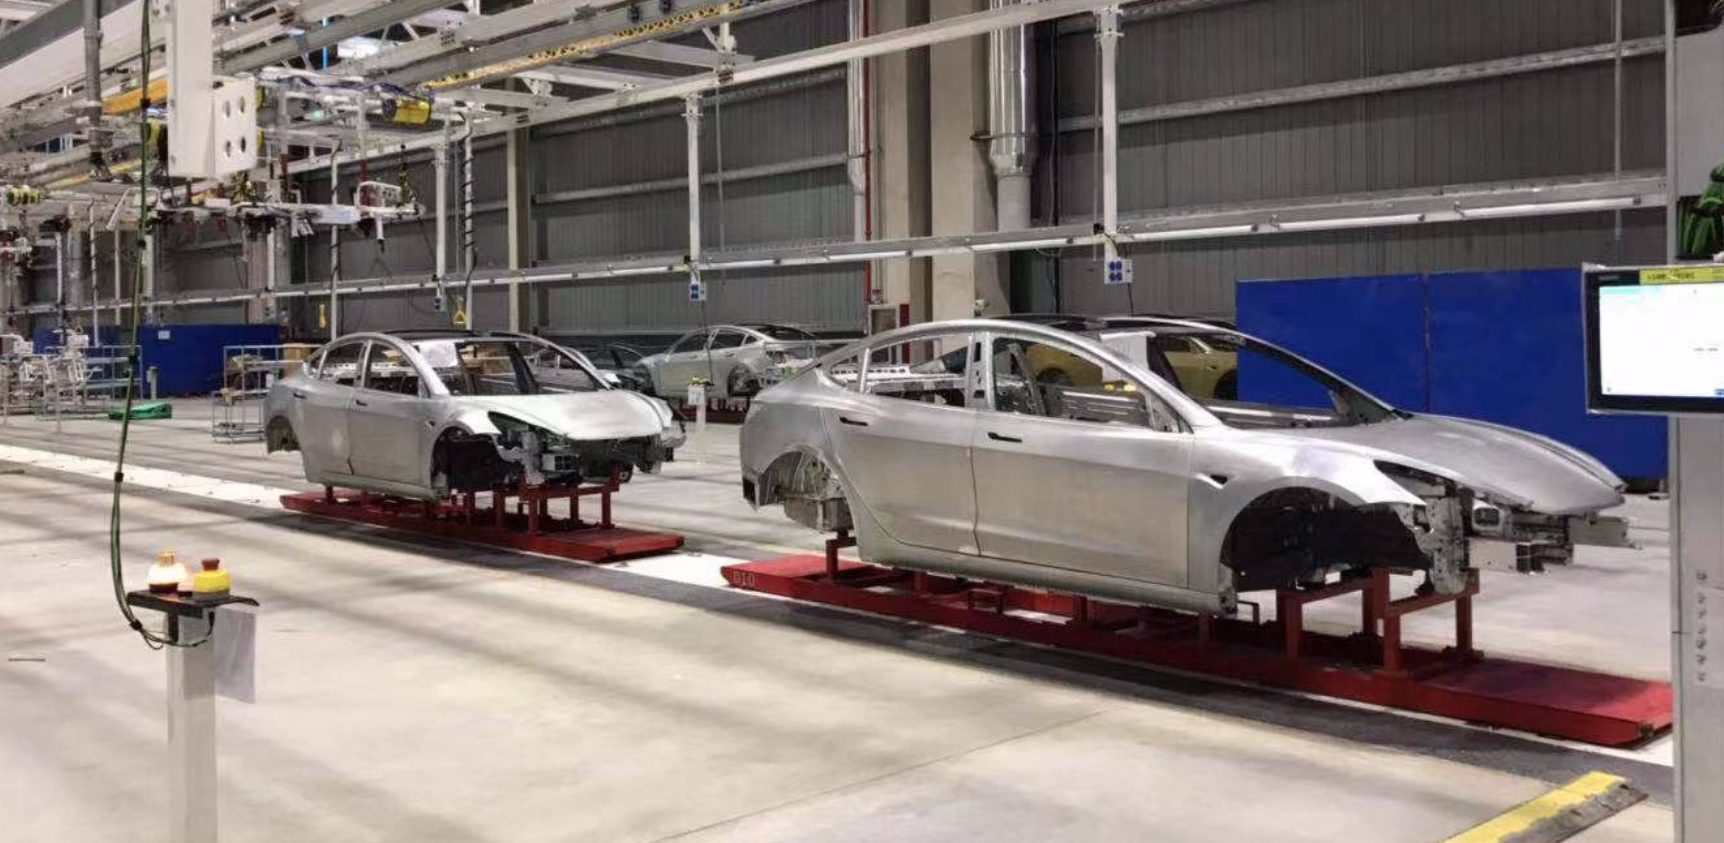 Tesla Gigafactory 3 leaked pictures show Model 3 bodies going down the line - Electrek